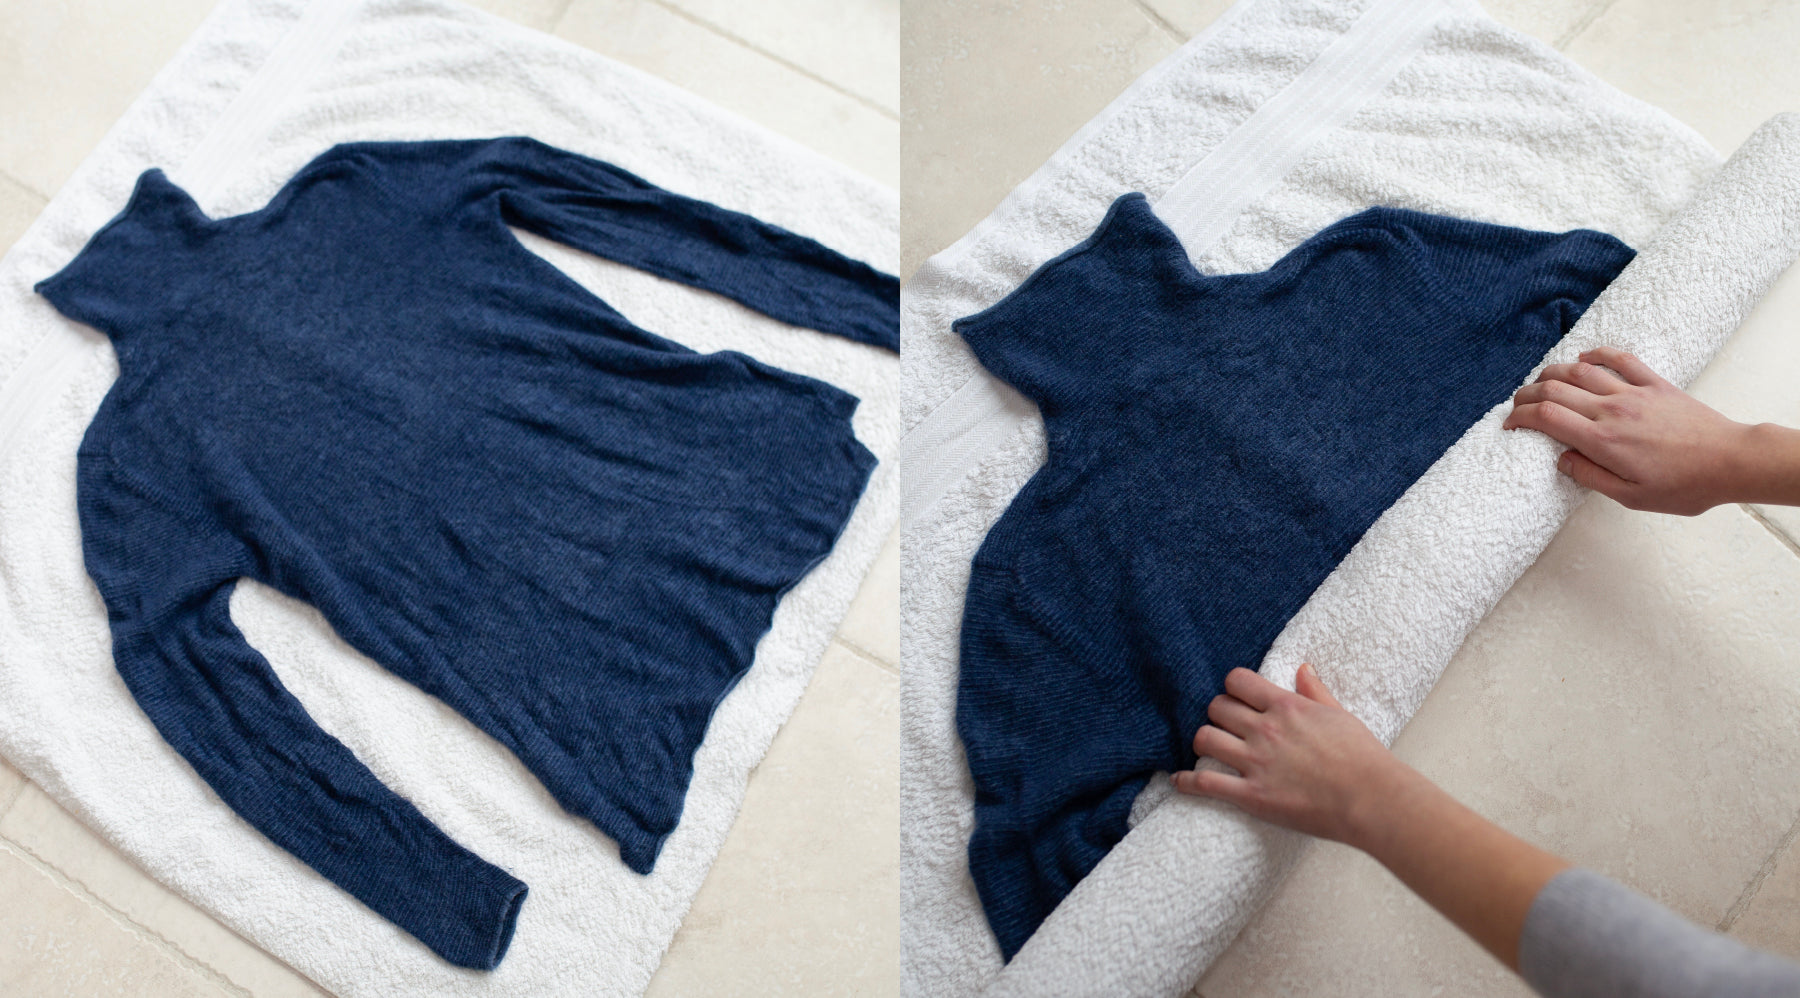 Les Cent Ciels navy jumper layed flat over a towel being rolled to rinse excess water